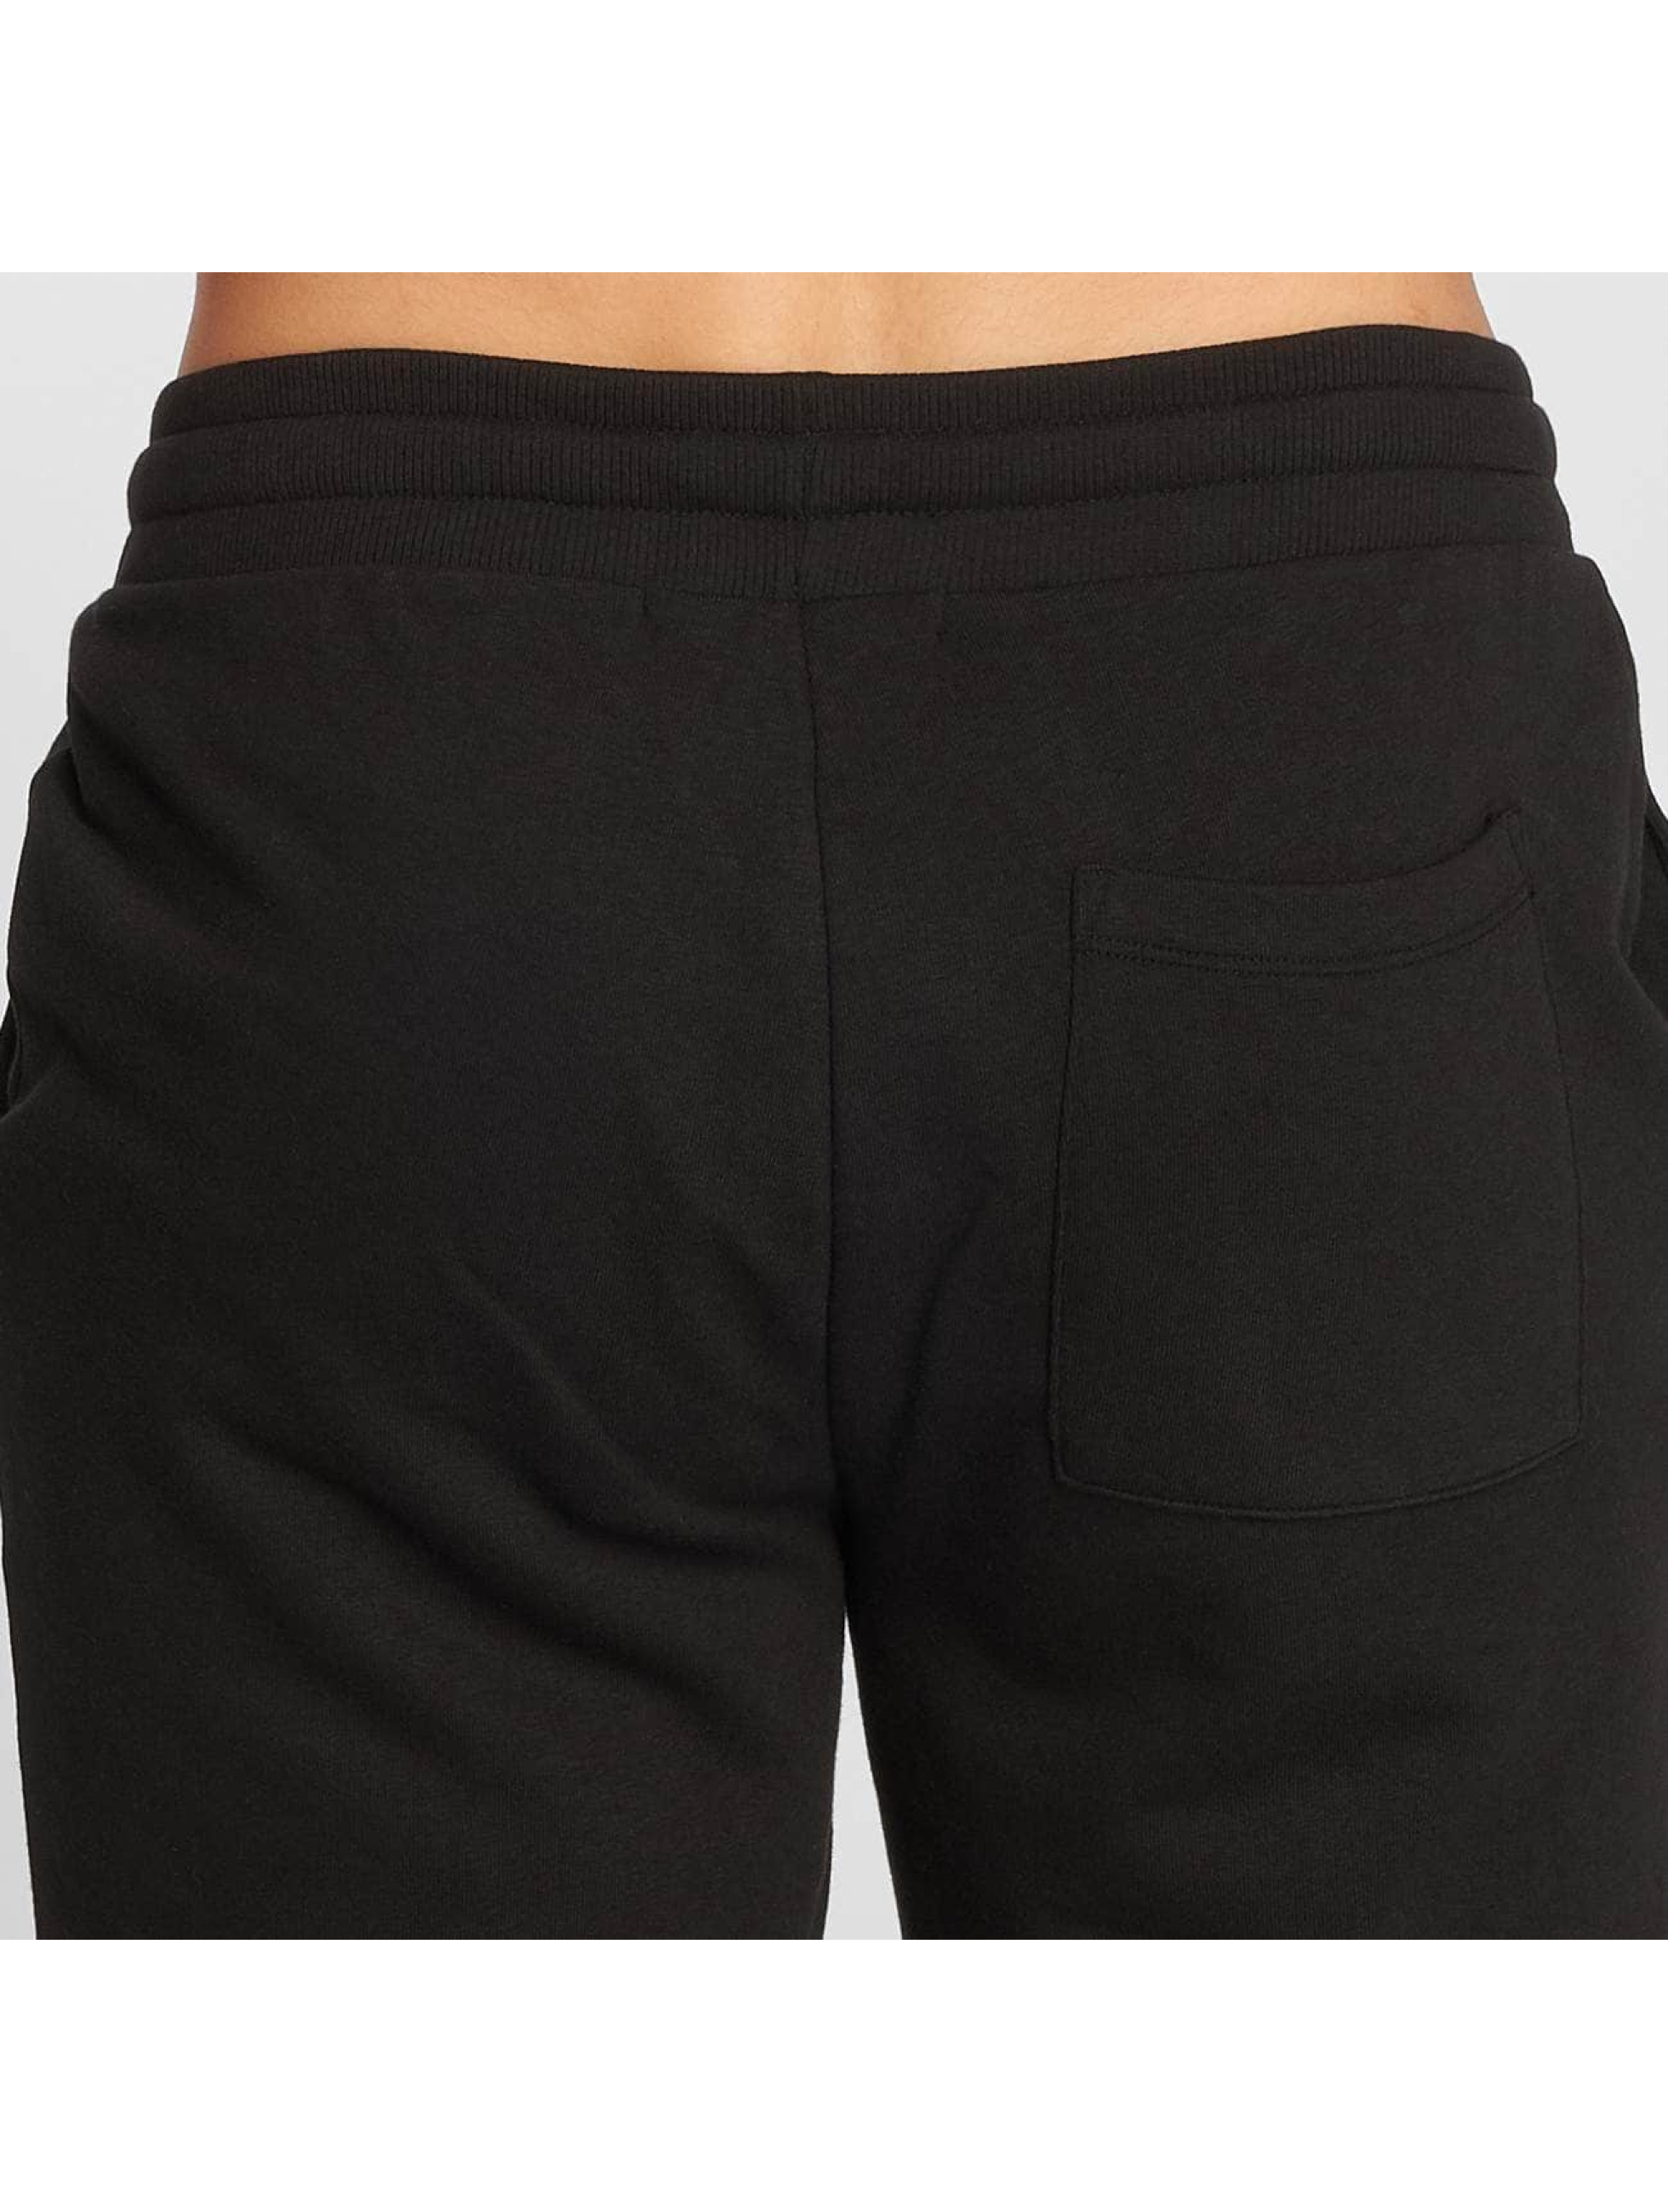 Only & Sons Shorts onsChristian schwarz